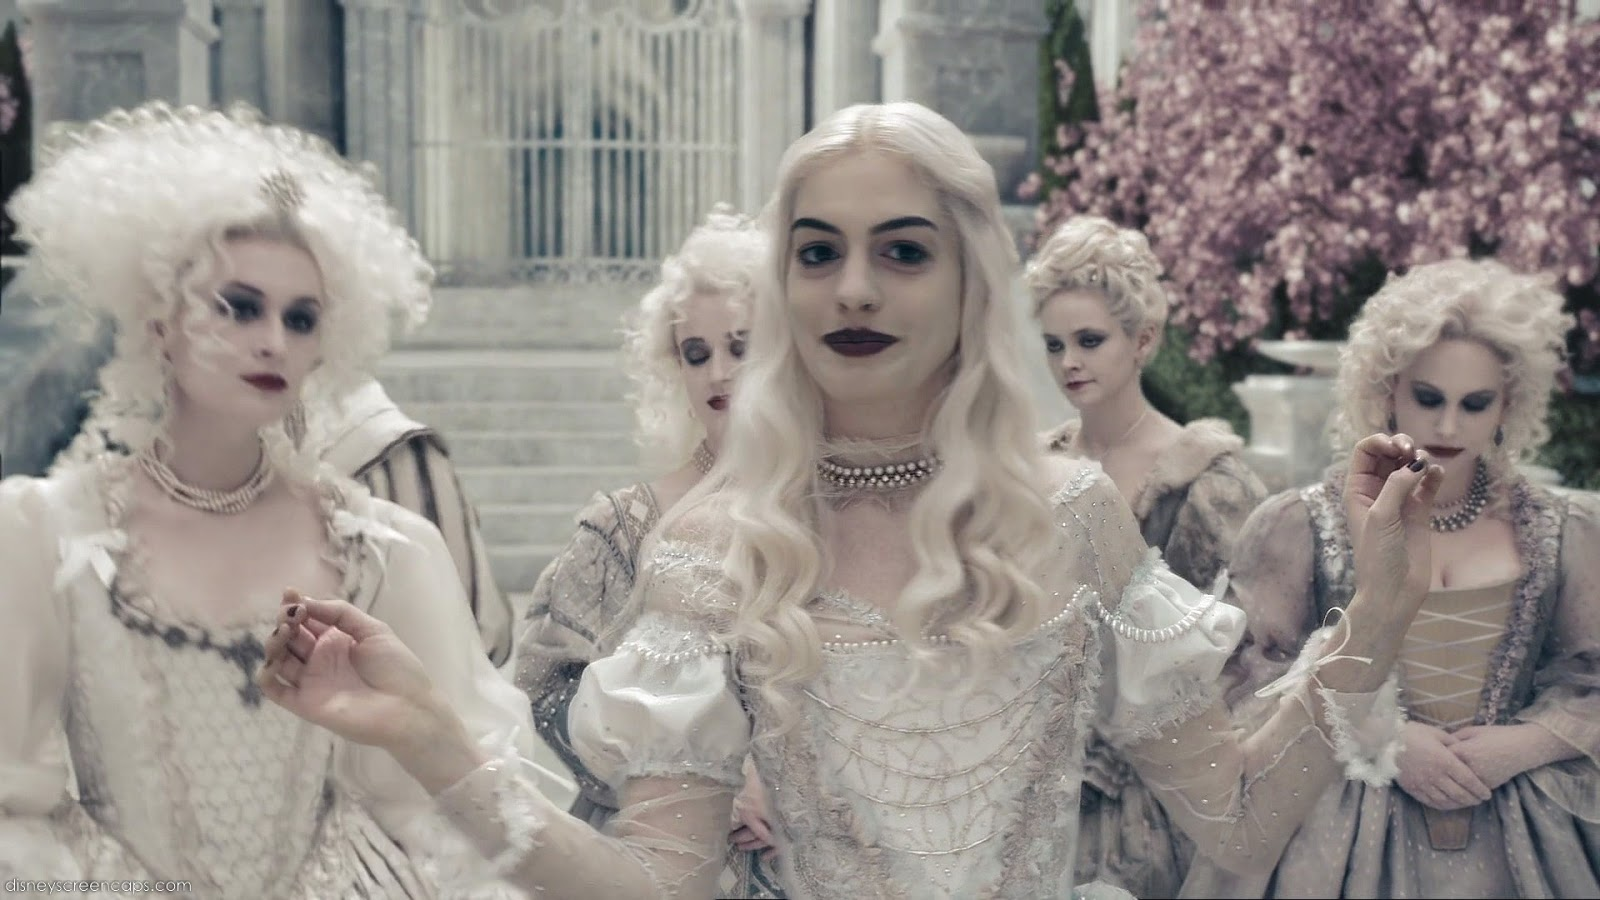 The White Queen's Court